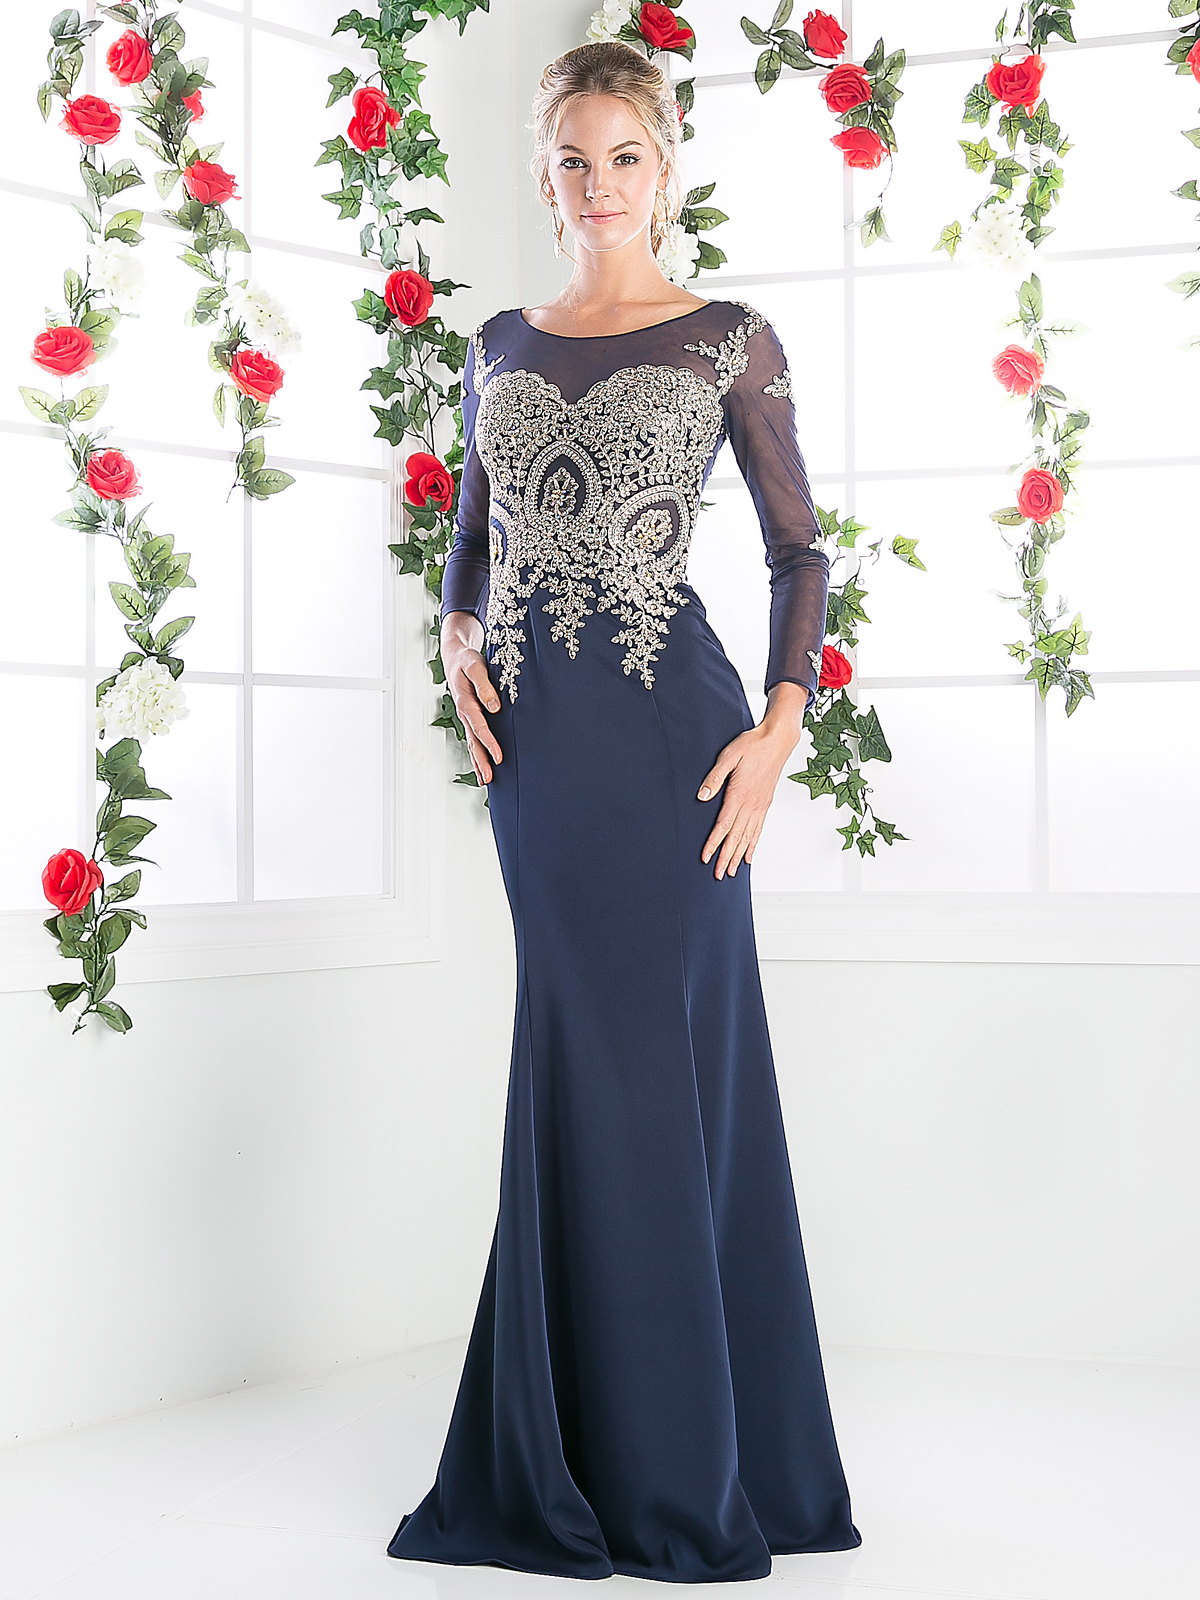 Illusion Embellished Long Evening Dress Sung Boutique L A